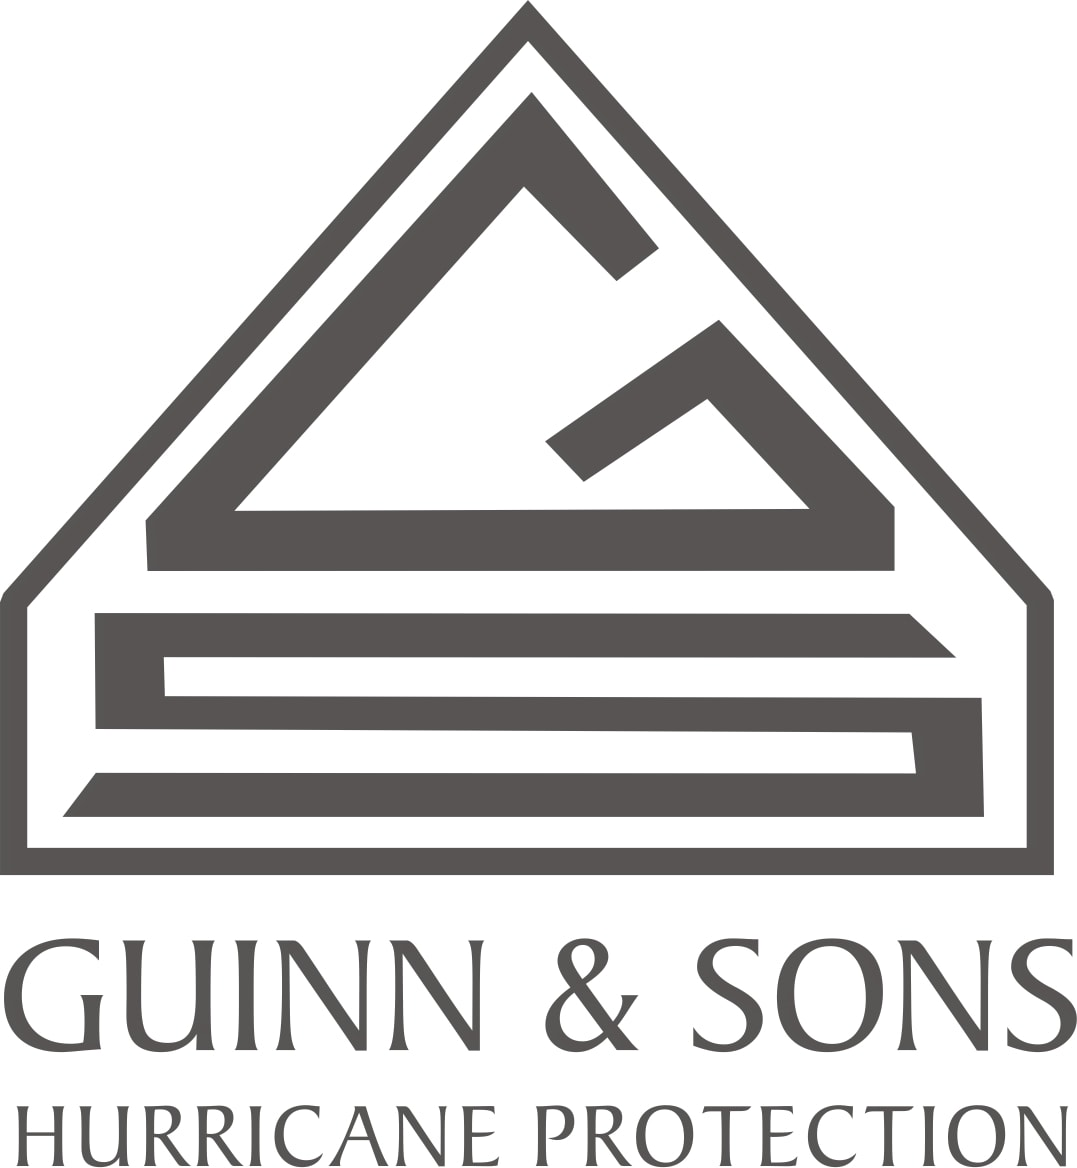 Guinn & Sons Hurricane Protection logo